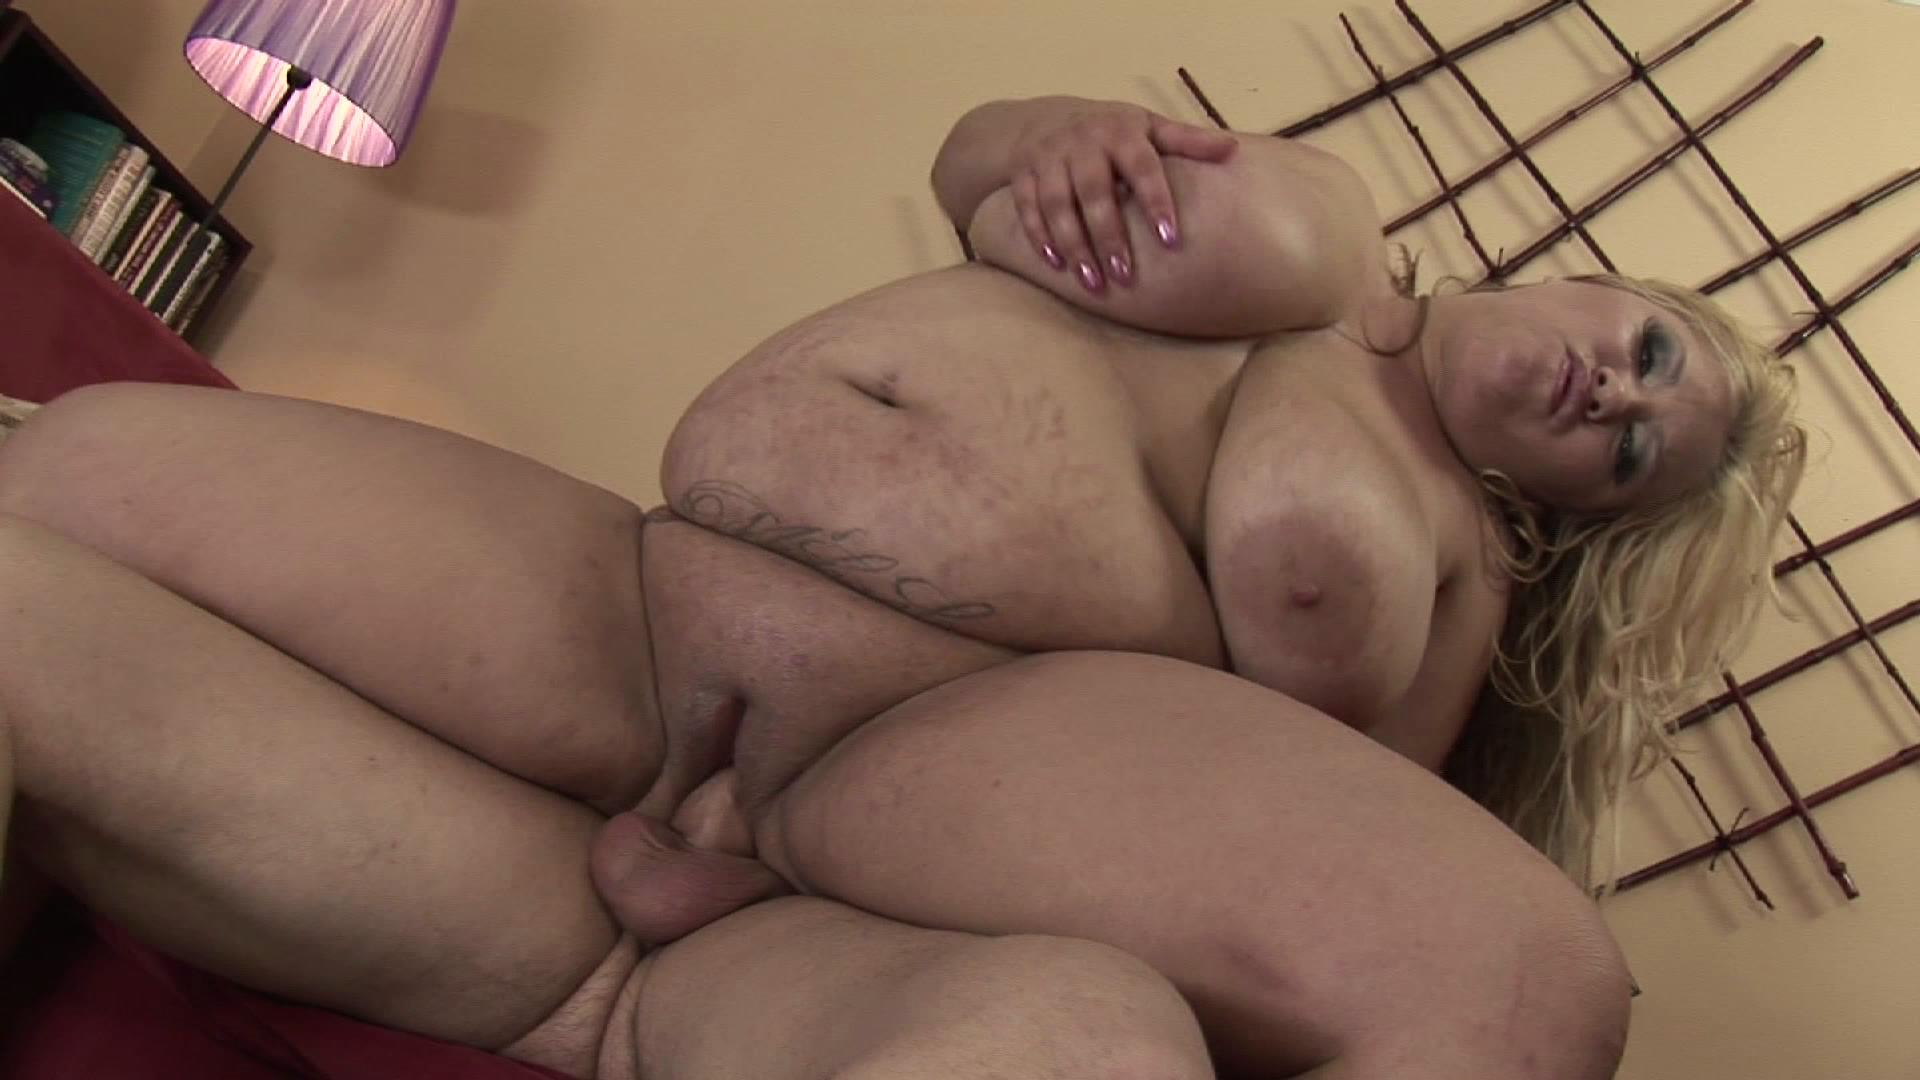 I Like Fat Girls 10 xvideos146025